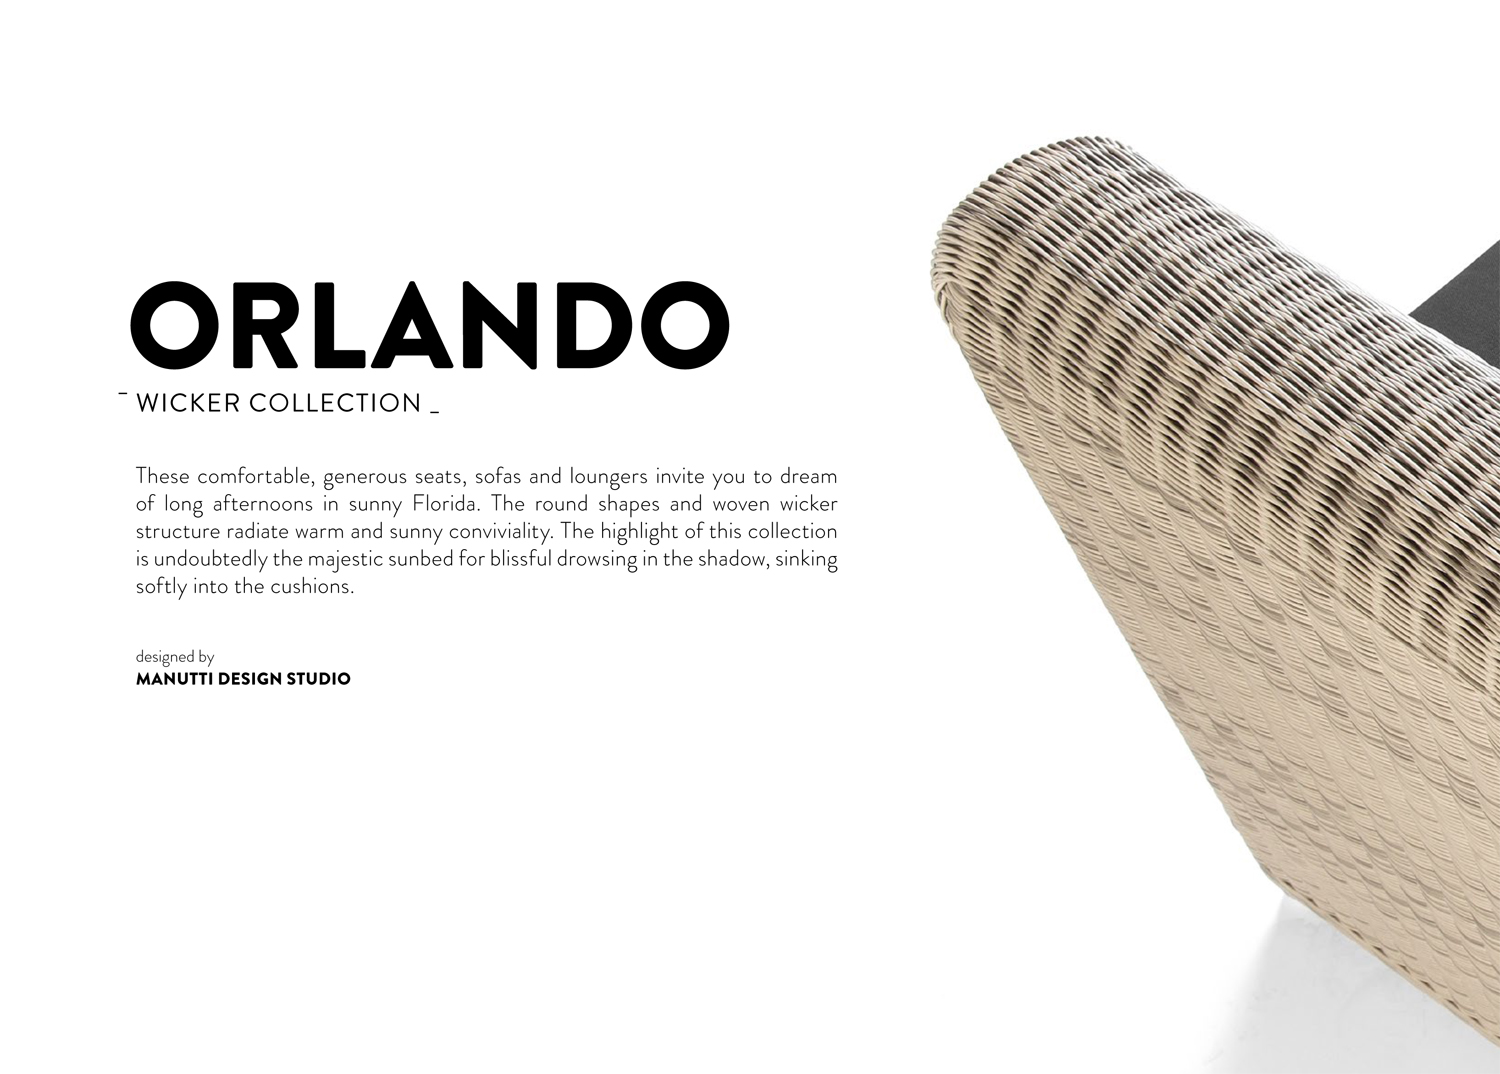 Orlando Sedie Orlando Wicker Collection